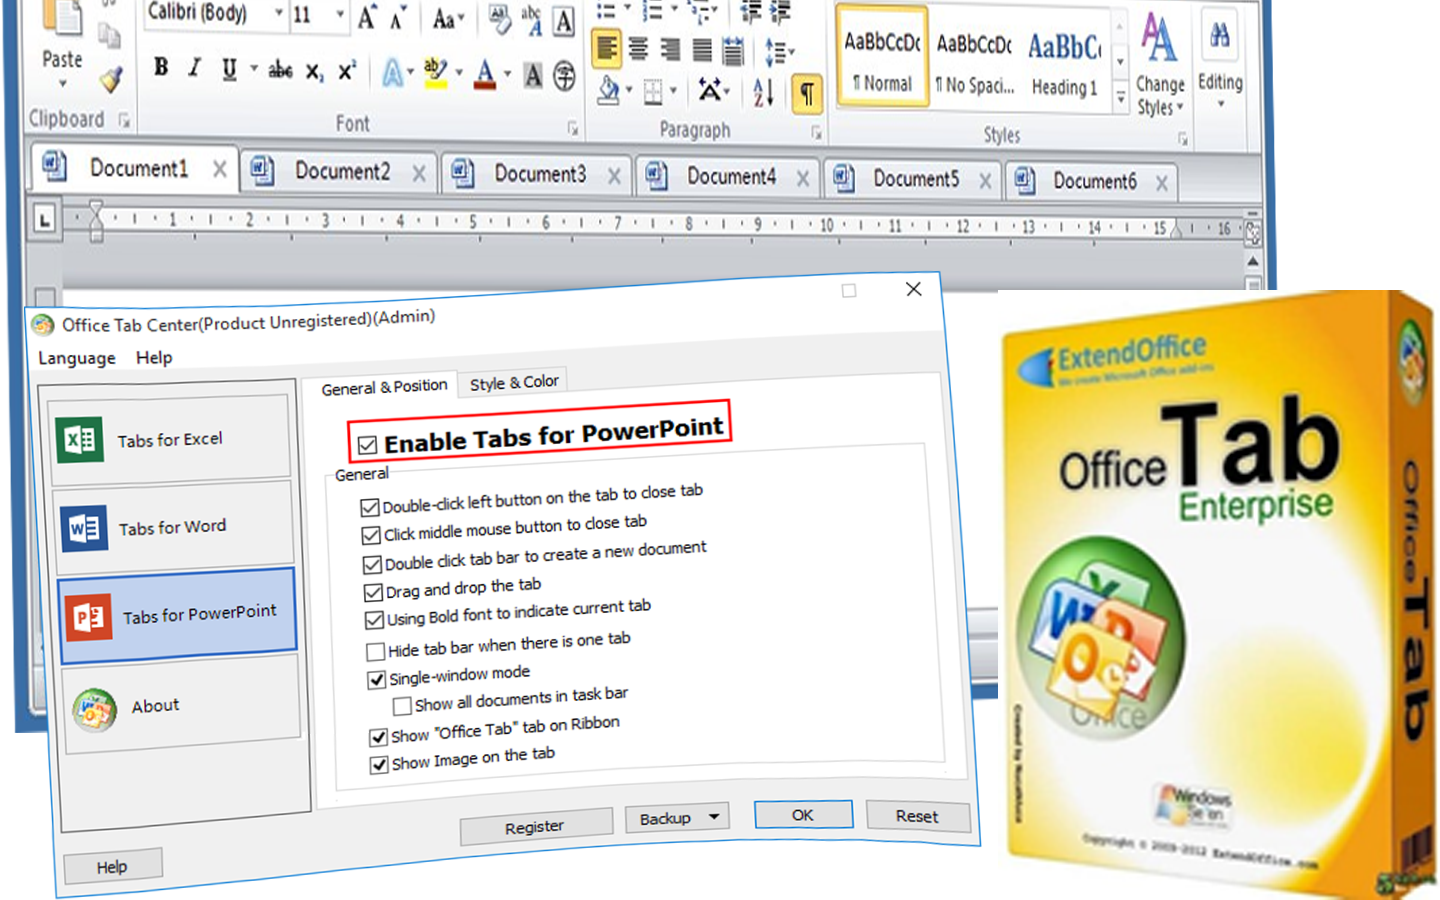 Download ms office 2010 gratis | Microsoft Office 2010 (free